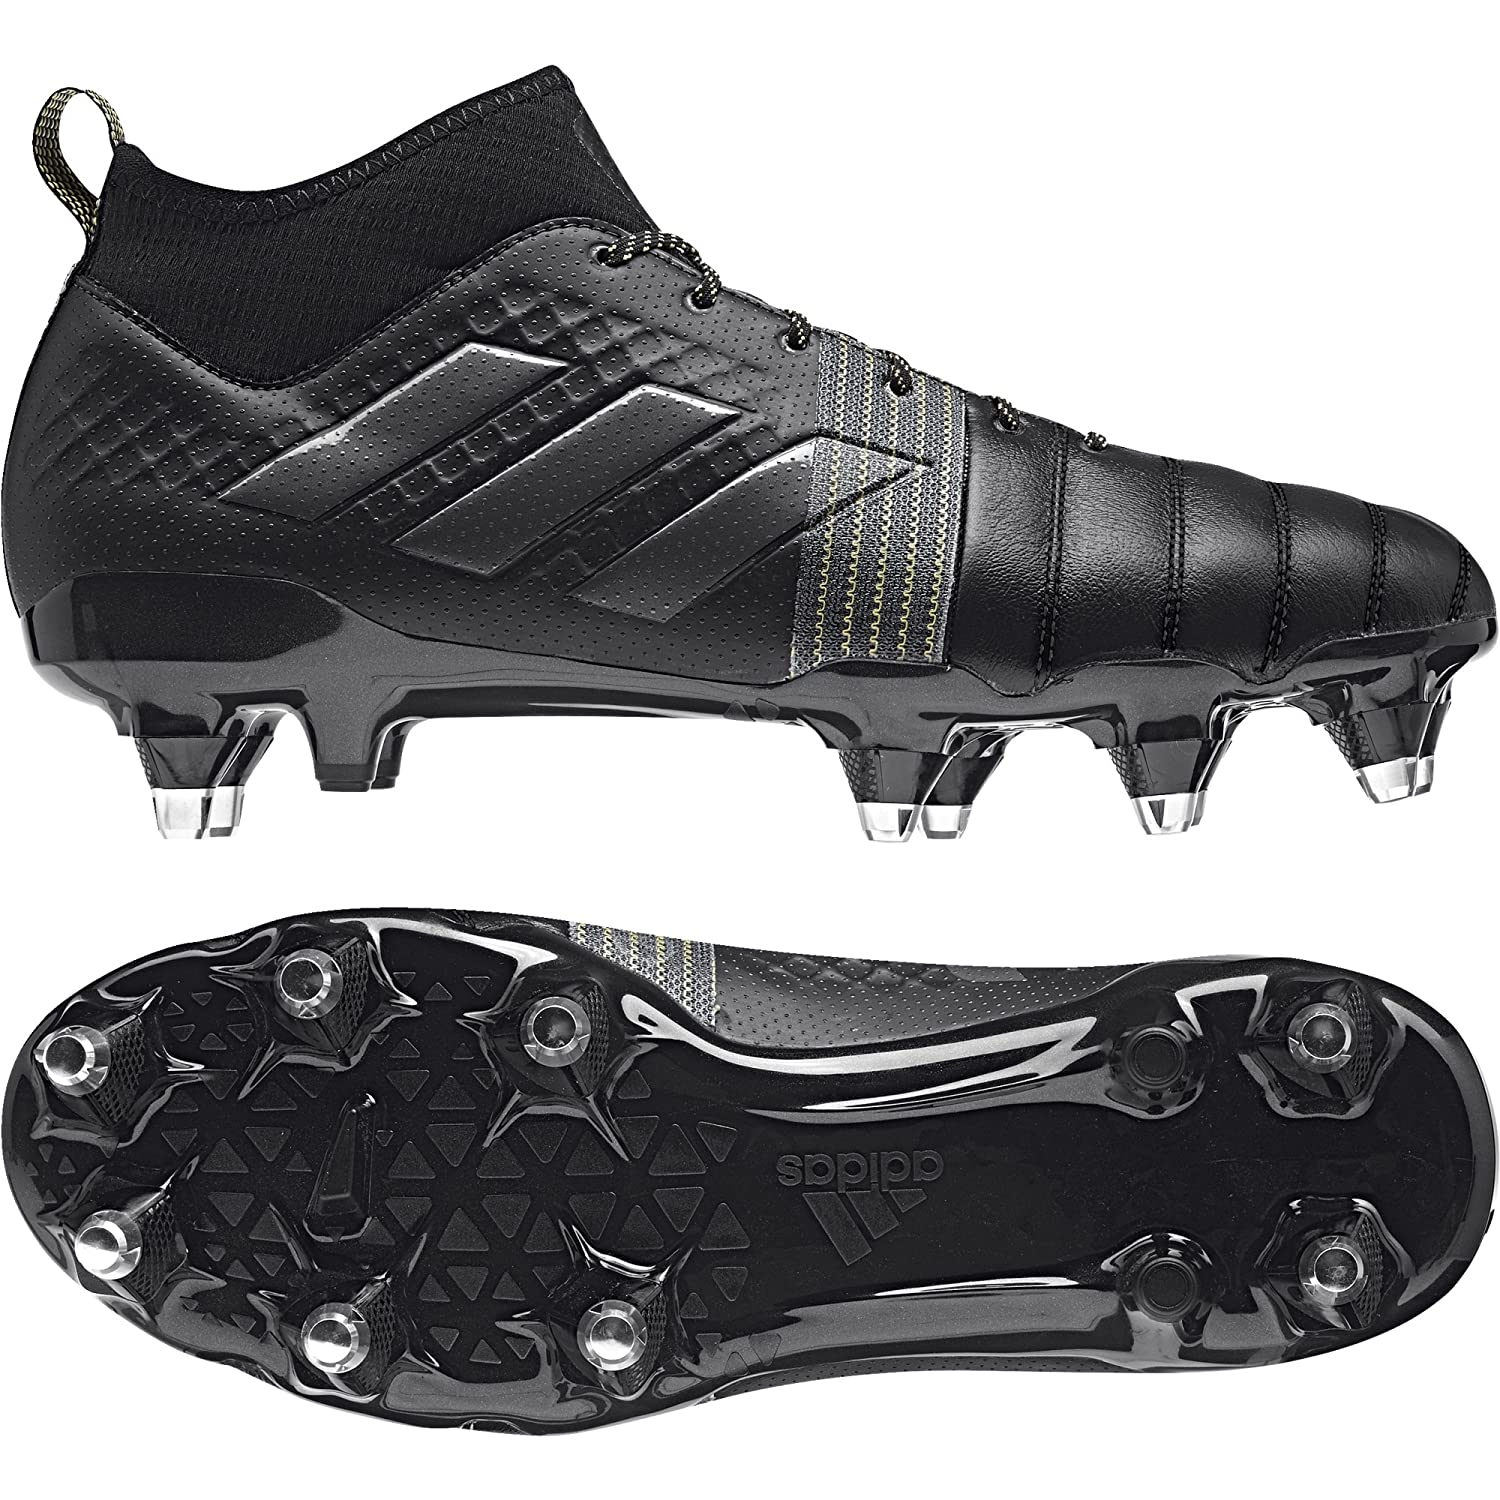 9b3a1047da75 adidas Kakari X Kevlar, Men's Rugby Shoes: Amazon.co.uk: Shoes & Bags